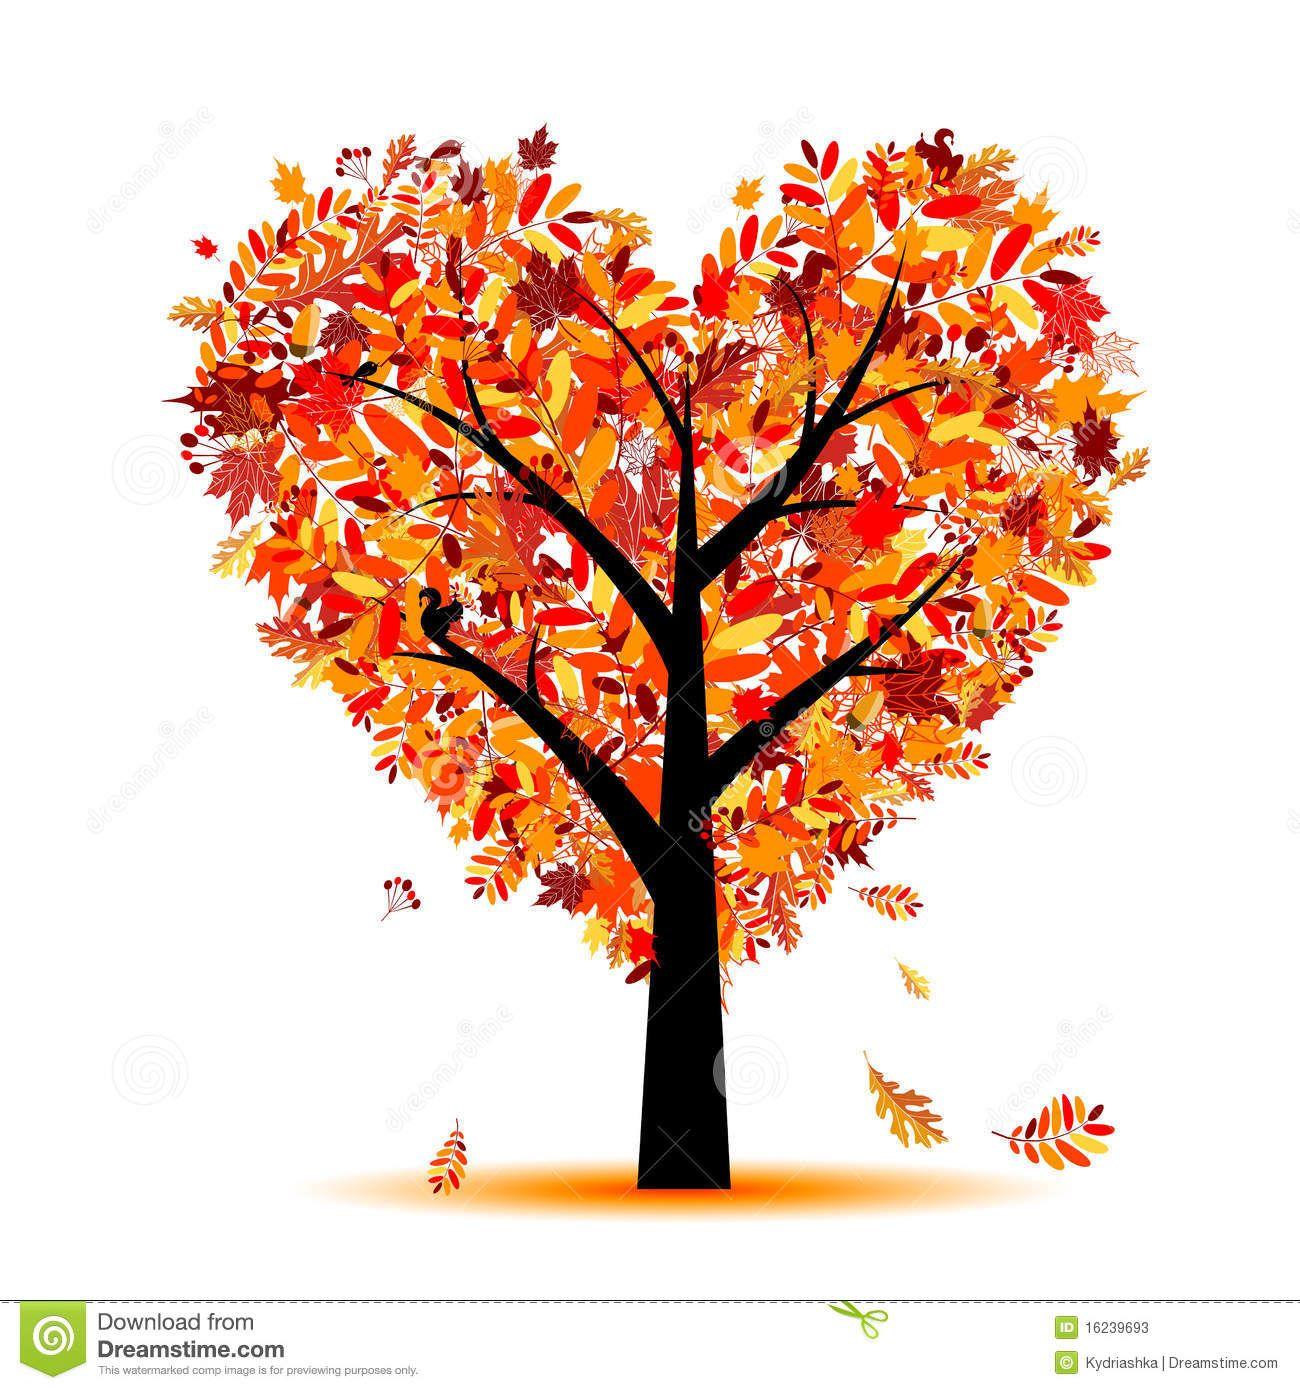 Gentil Beautiful Autumn Tree Heart Shape For Your Design   Download From Over 53  Million High Quality